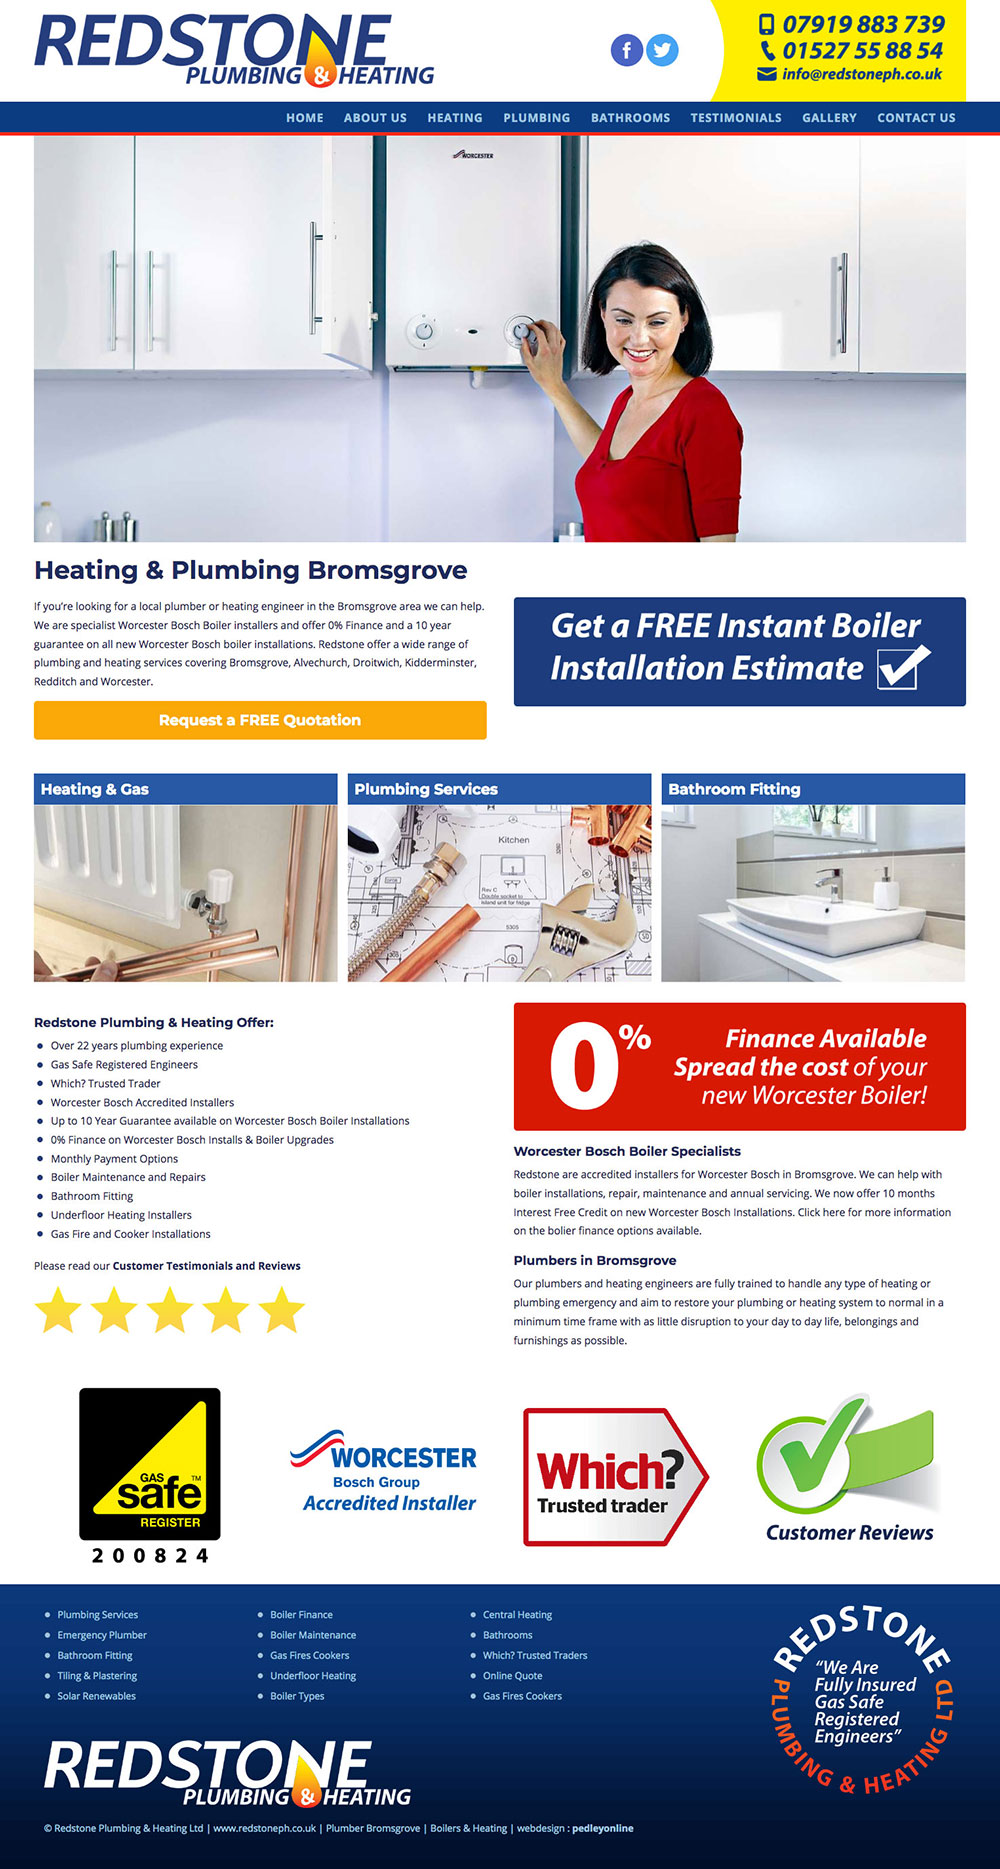 New website for Redstone Plumbing and Heating